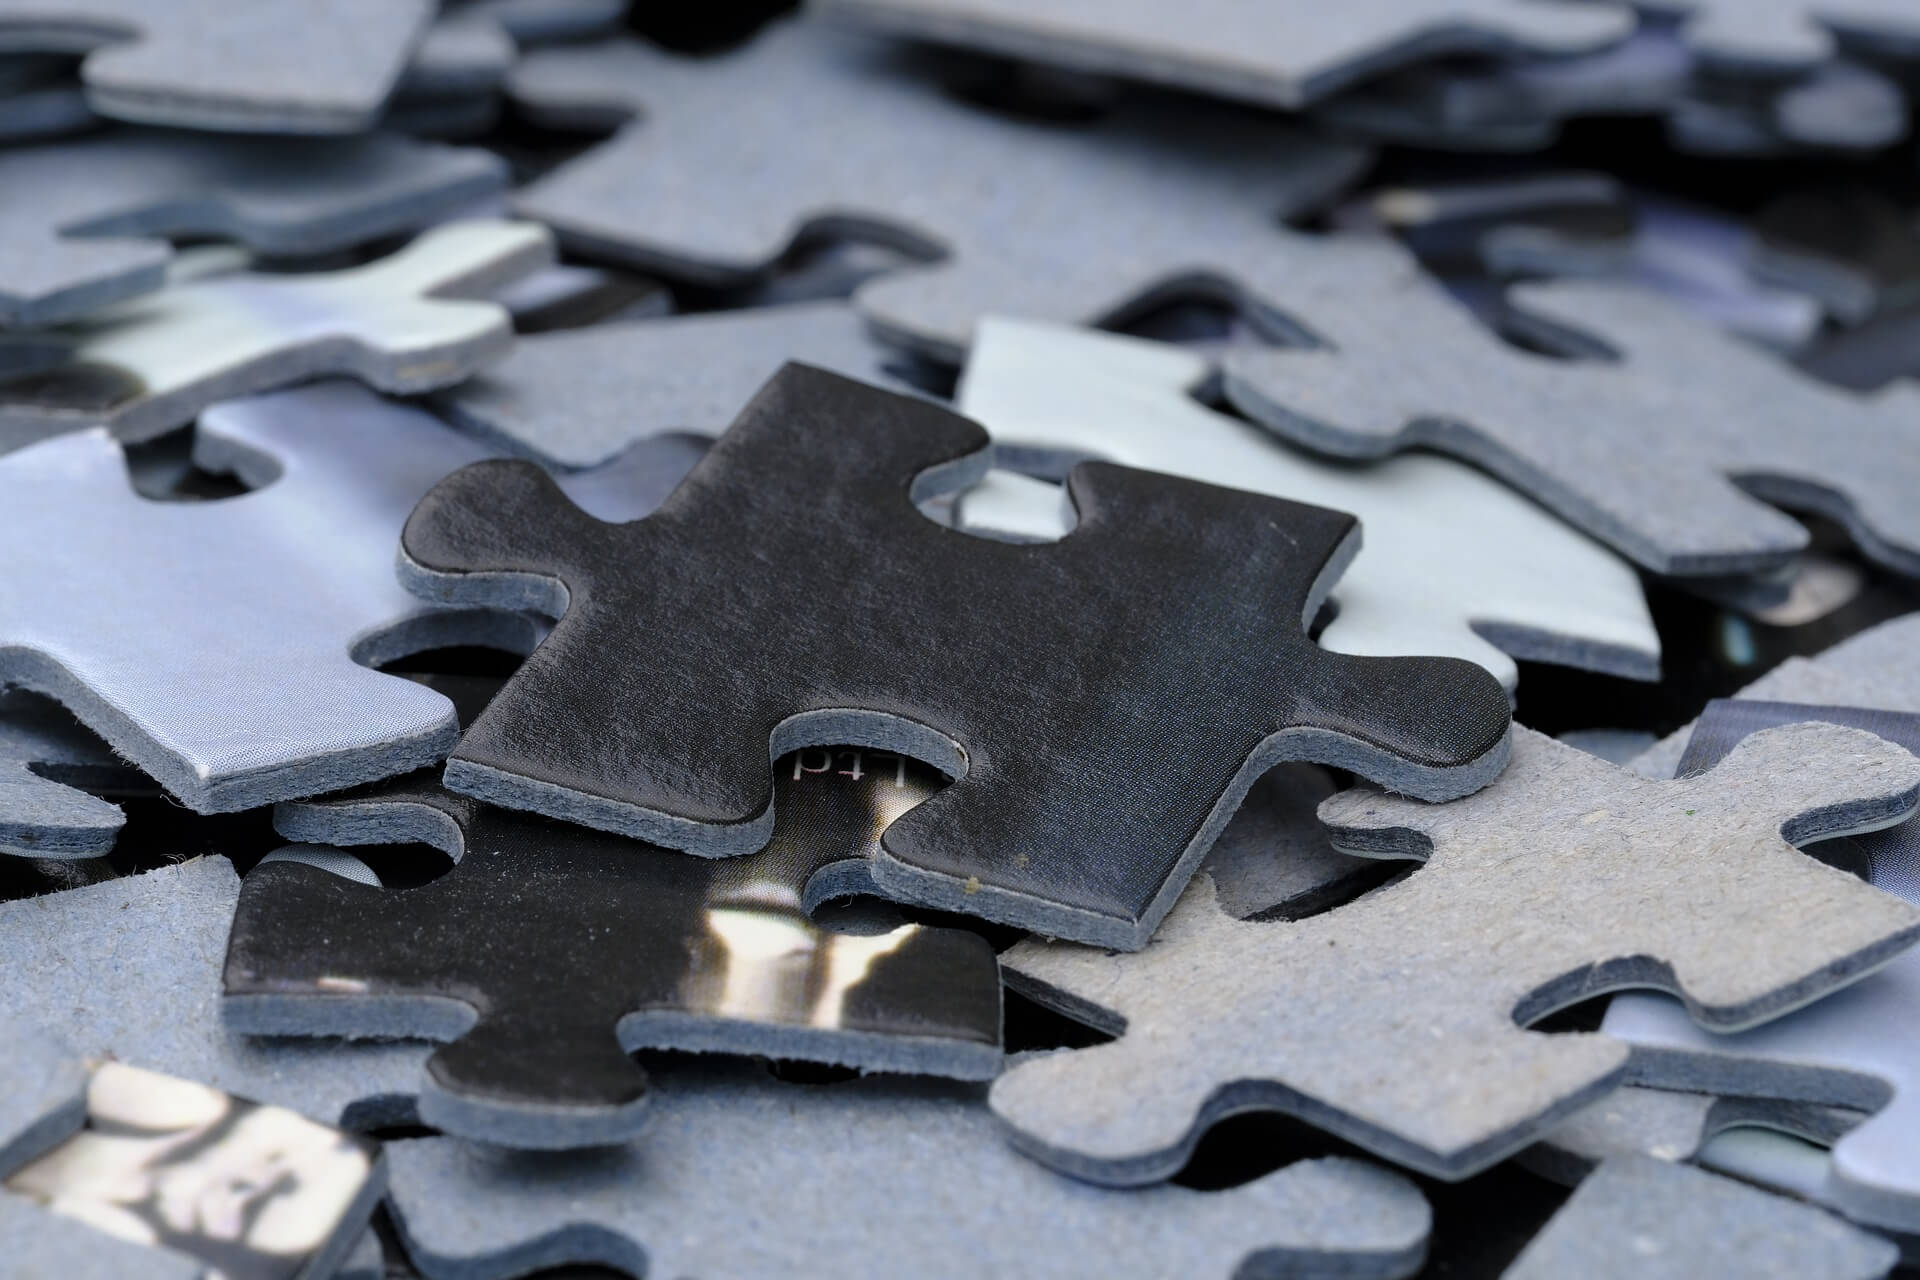 Jeff Jinks Law - Indianapolis Real Estate Attorney - Picture of Puzzle Pieces